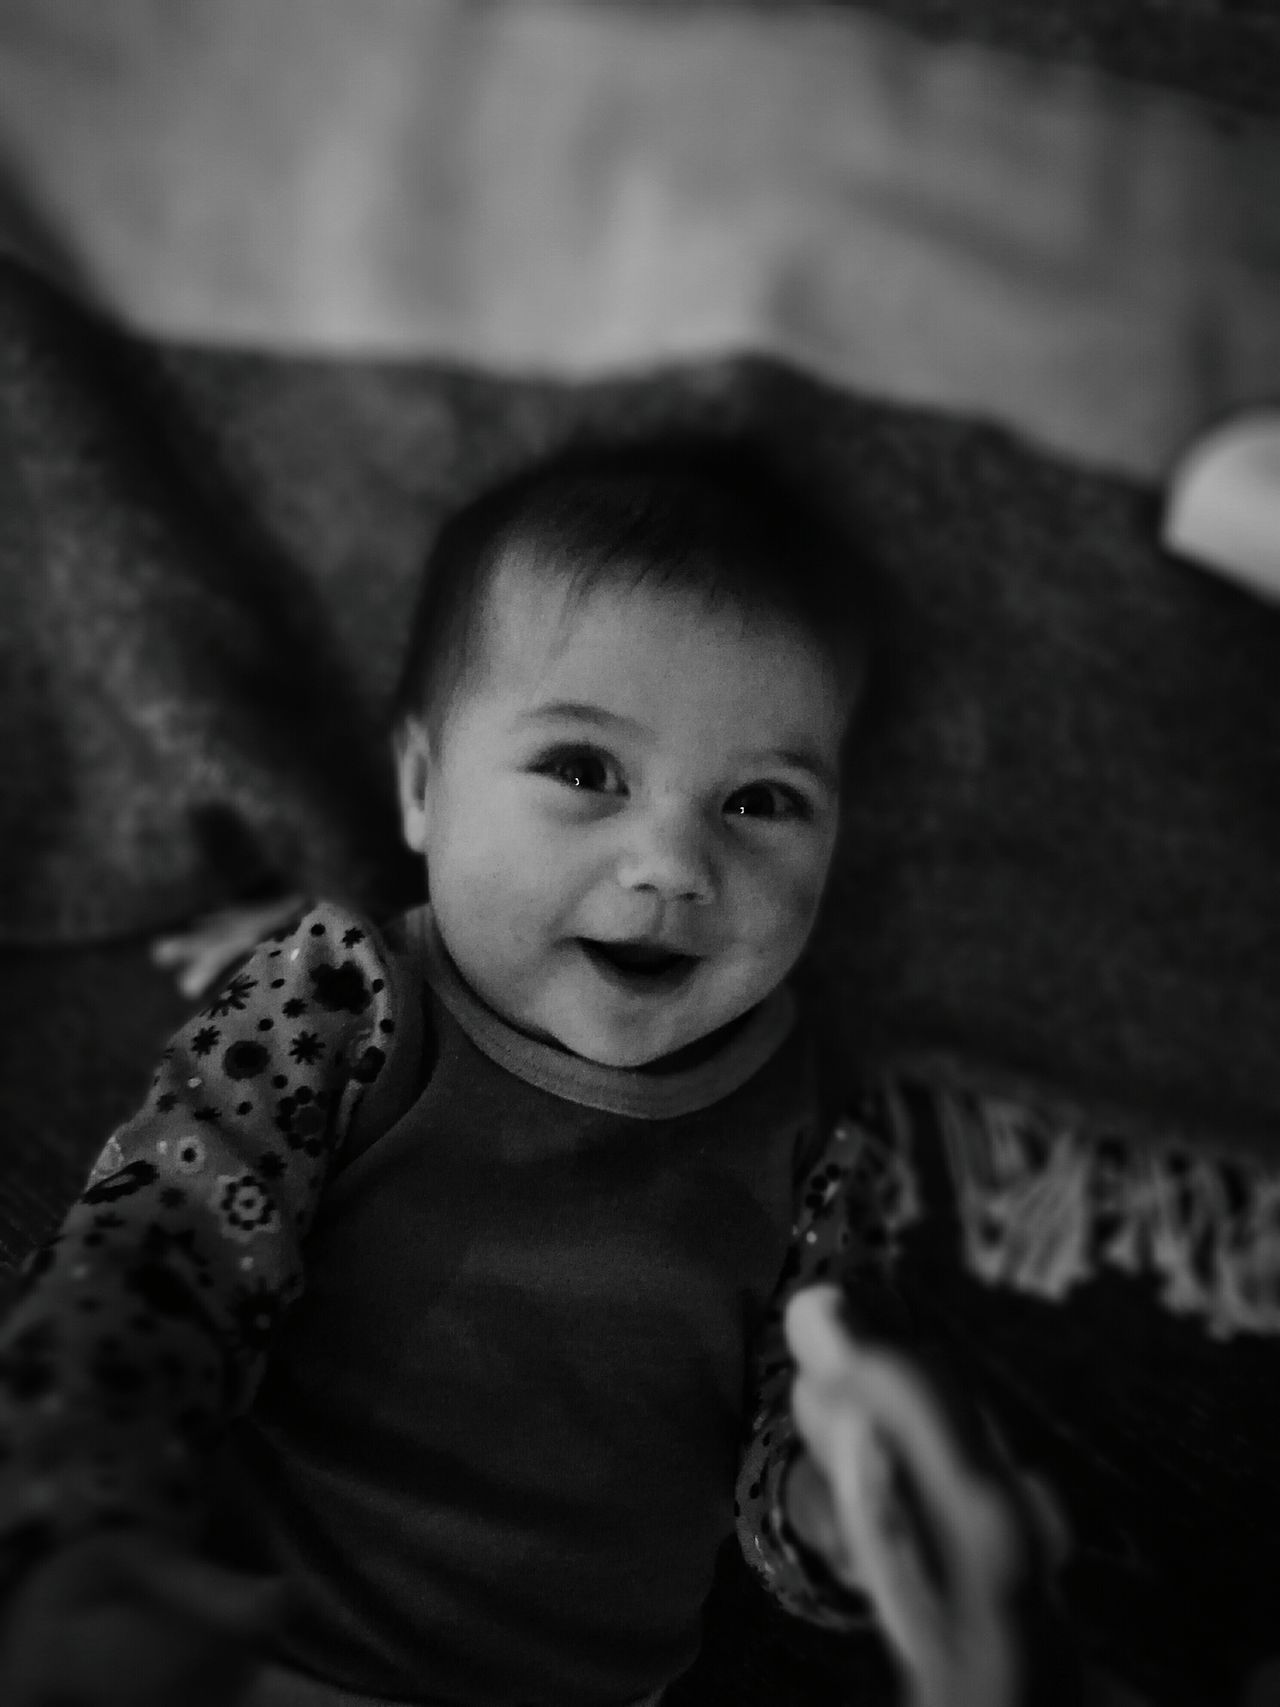 Baby Childhood Smiling Close-up Innocence Indoors  Babyhood Blanket Blackandwhite Portrait Youth Classic Smile Looking At Camera Truebeauty Beauty Beautiful Lying On Back Littlesister